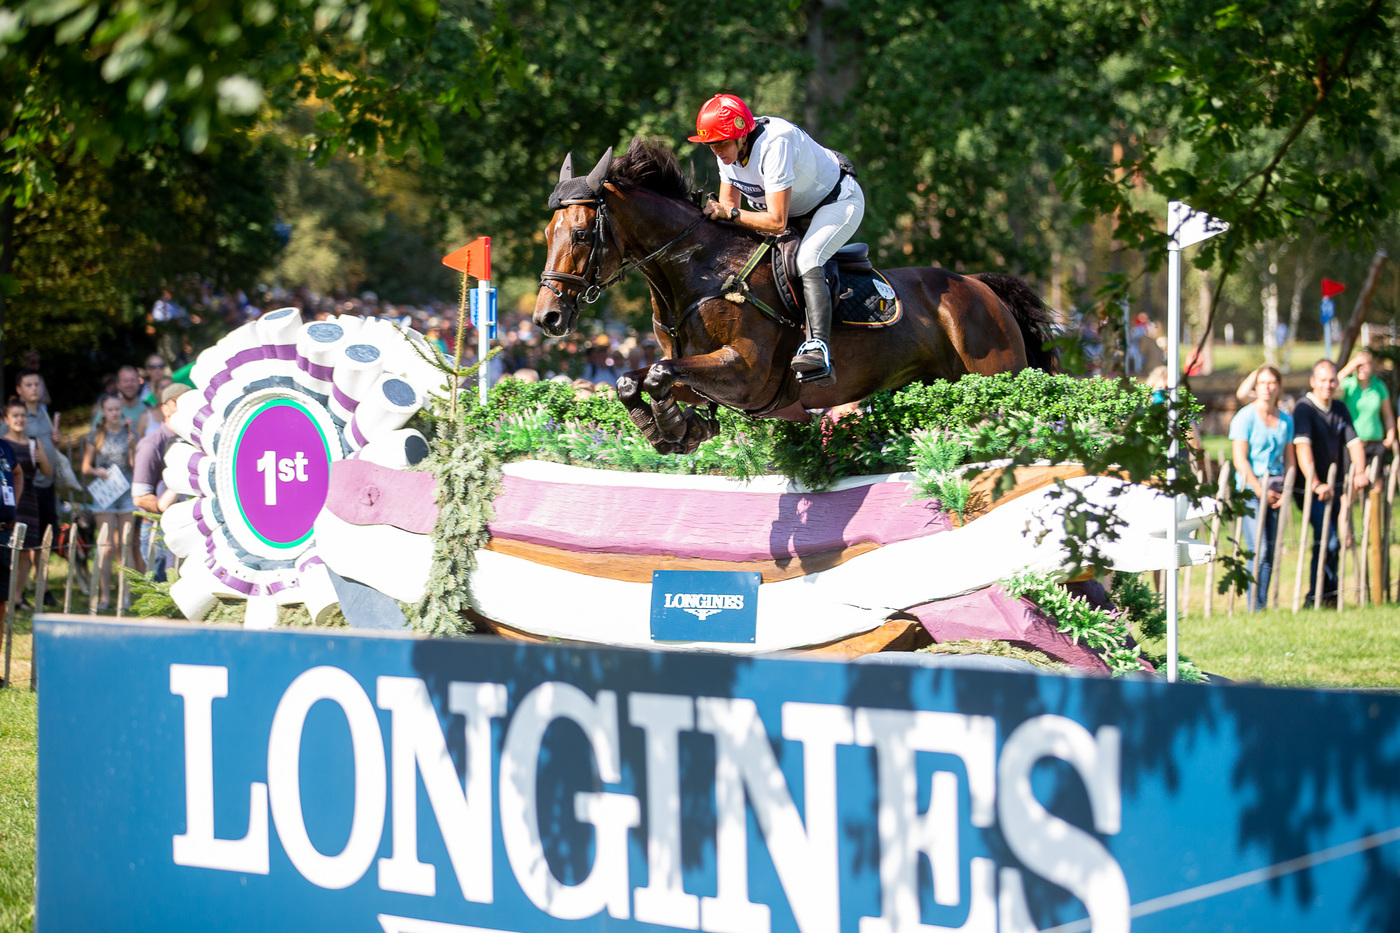 Longines Eventing Event: Team Germany claimed the 2019 Longines FEI Eventing European Championships crown in Luhmühlen 3